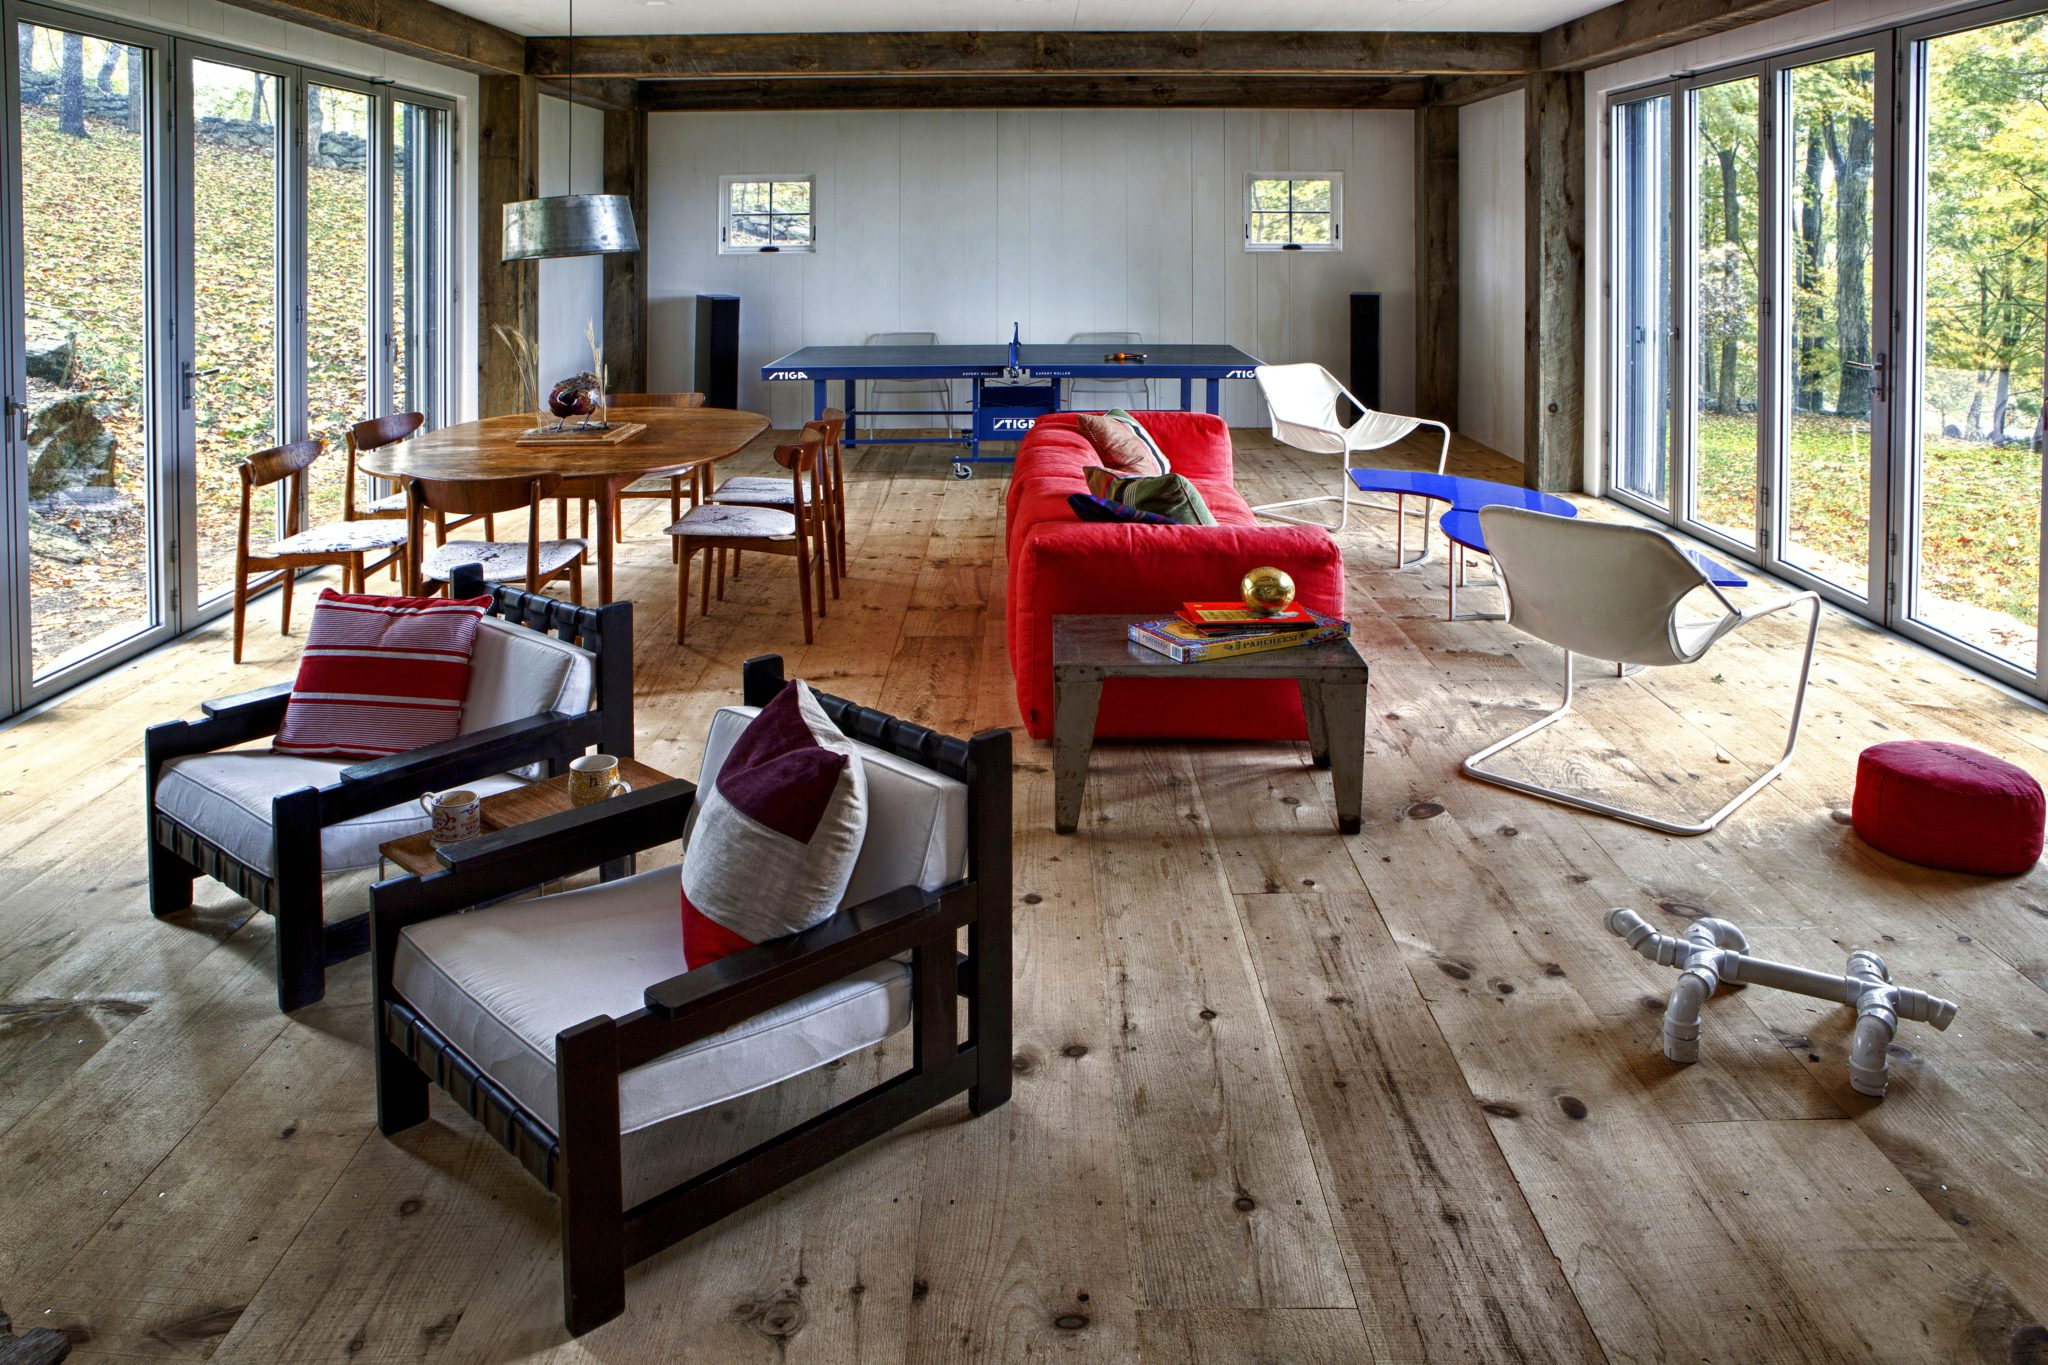 Cornwall, CT Game Barn by Fawn Galli Interiors